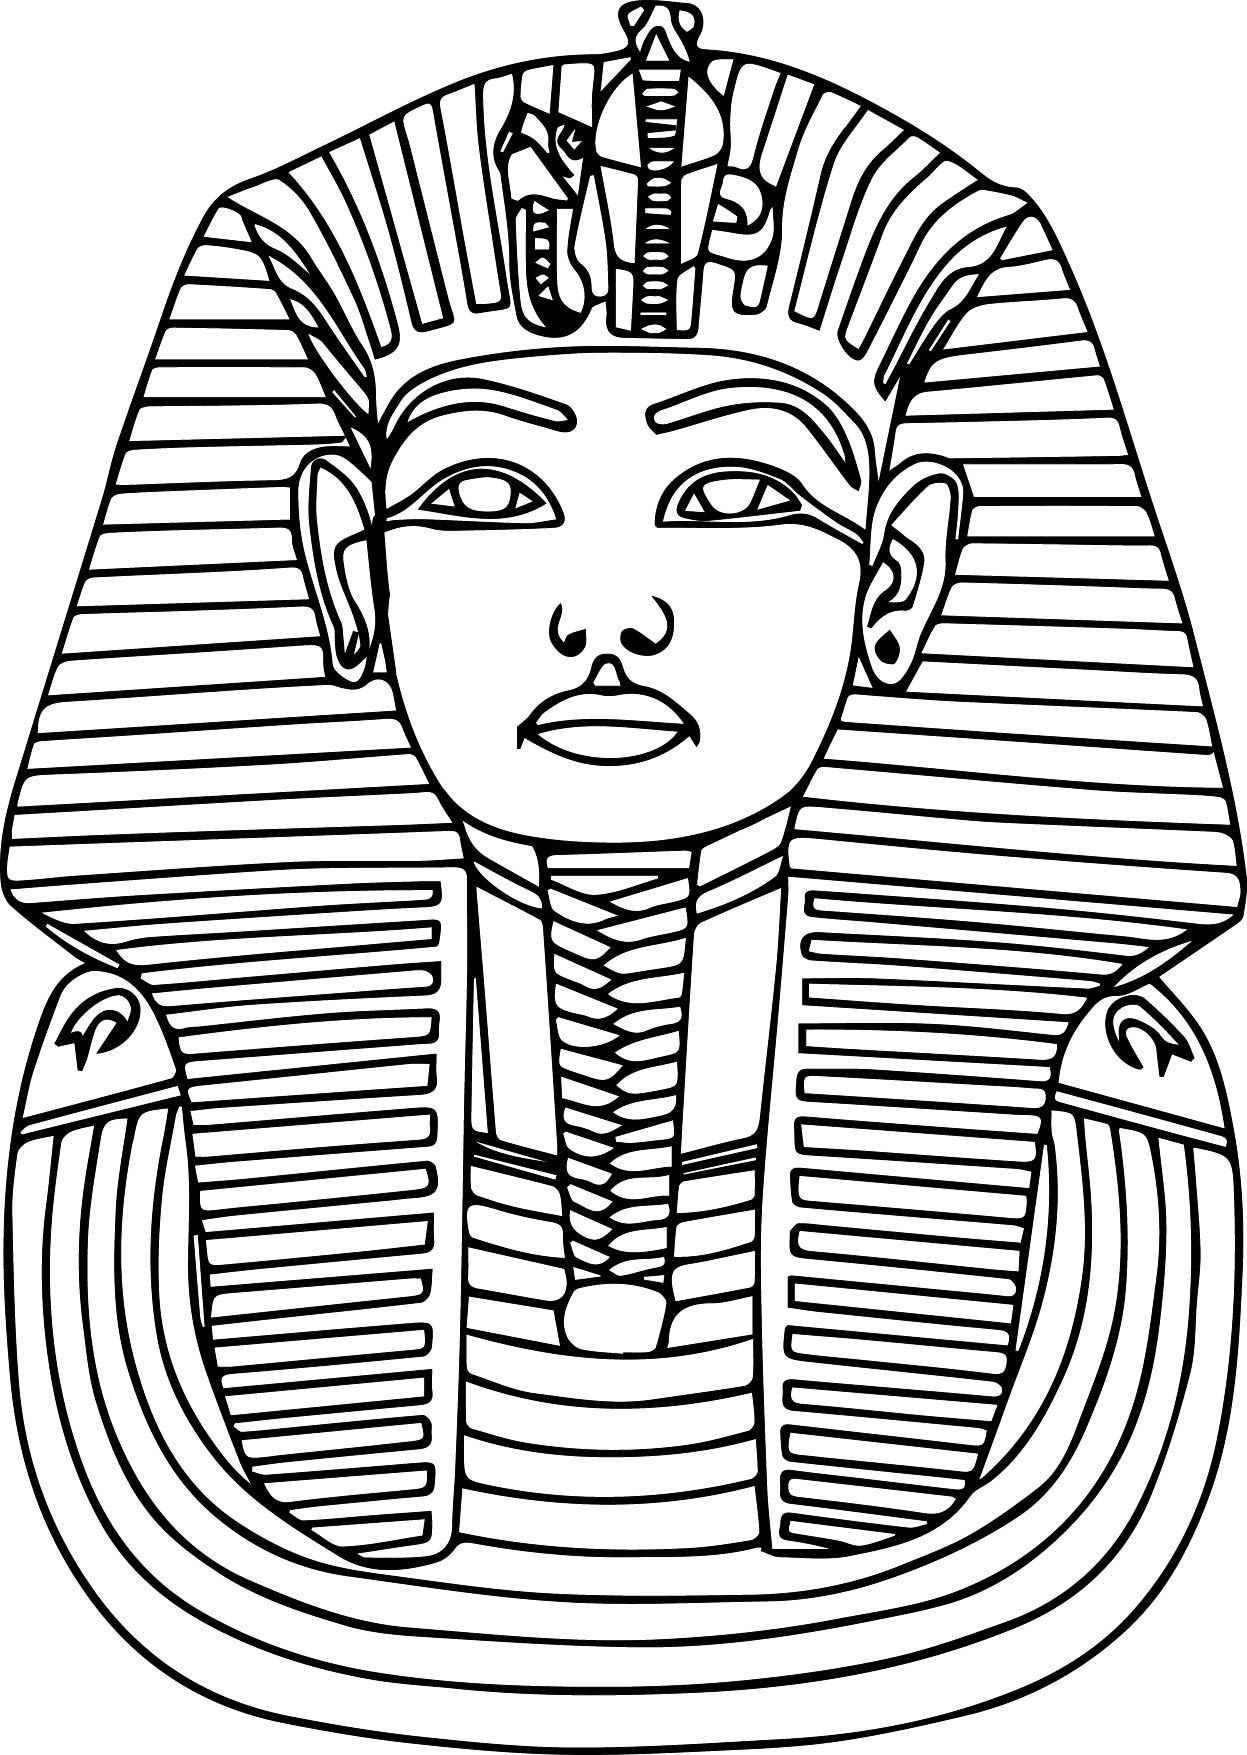 Ancient Egyptian Coloring Pages - Coloring Home | 1755x1247